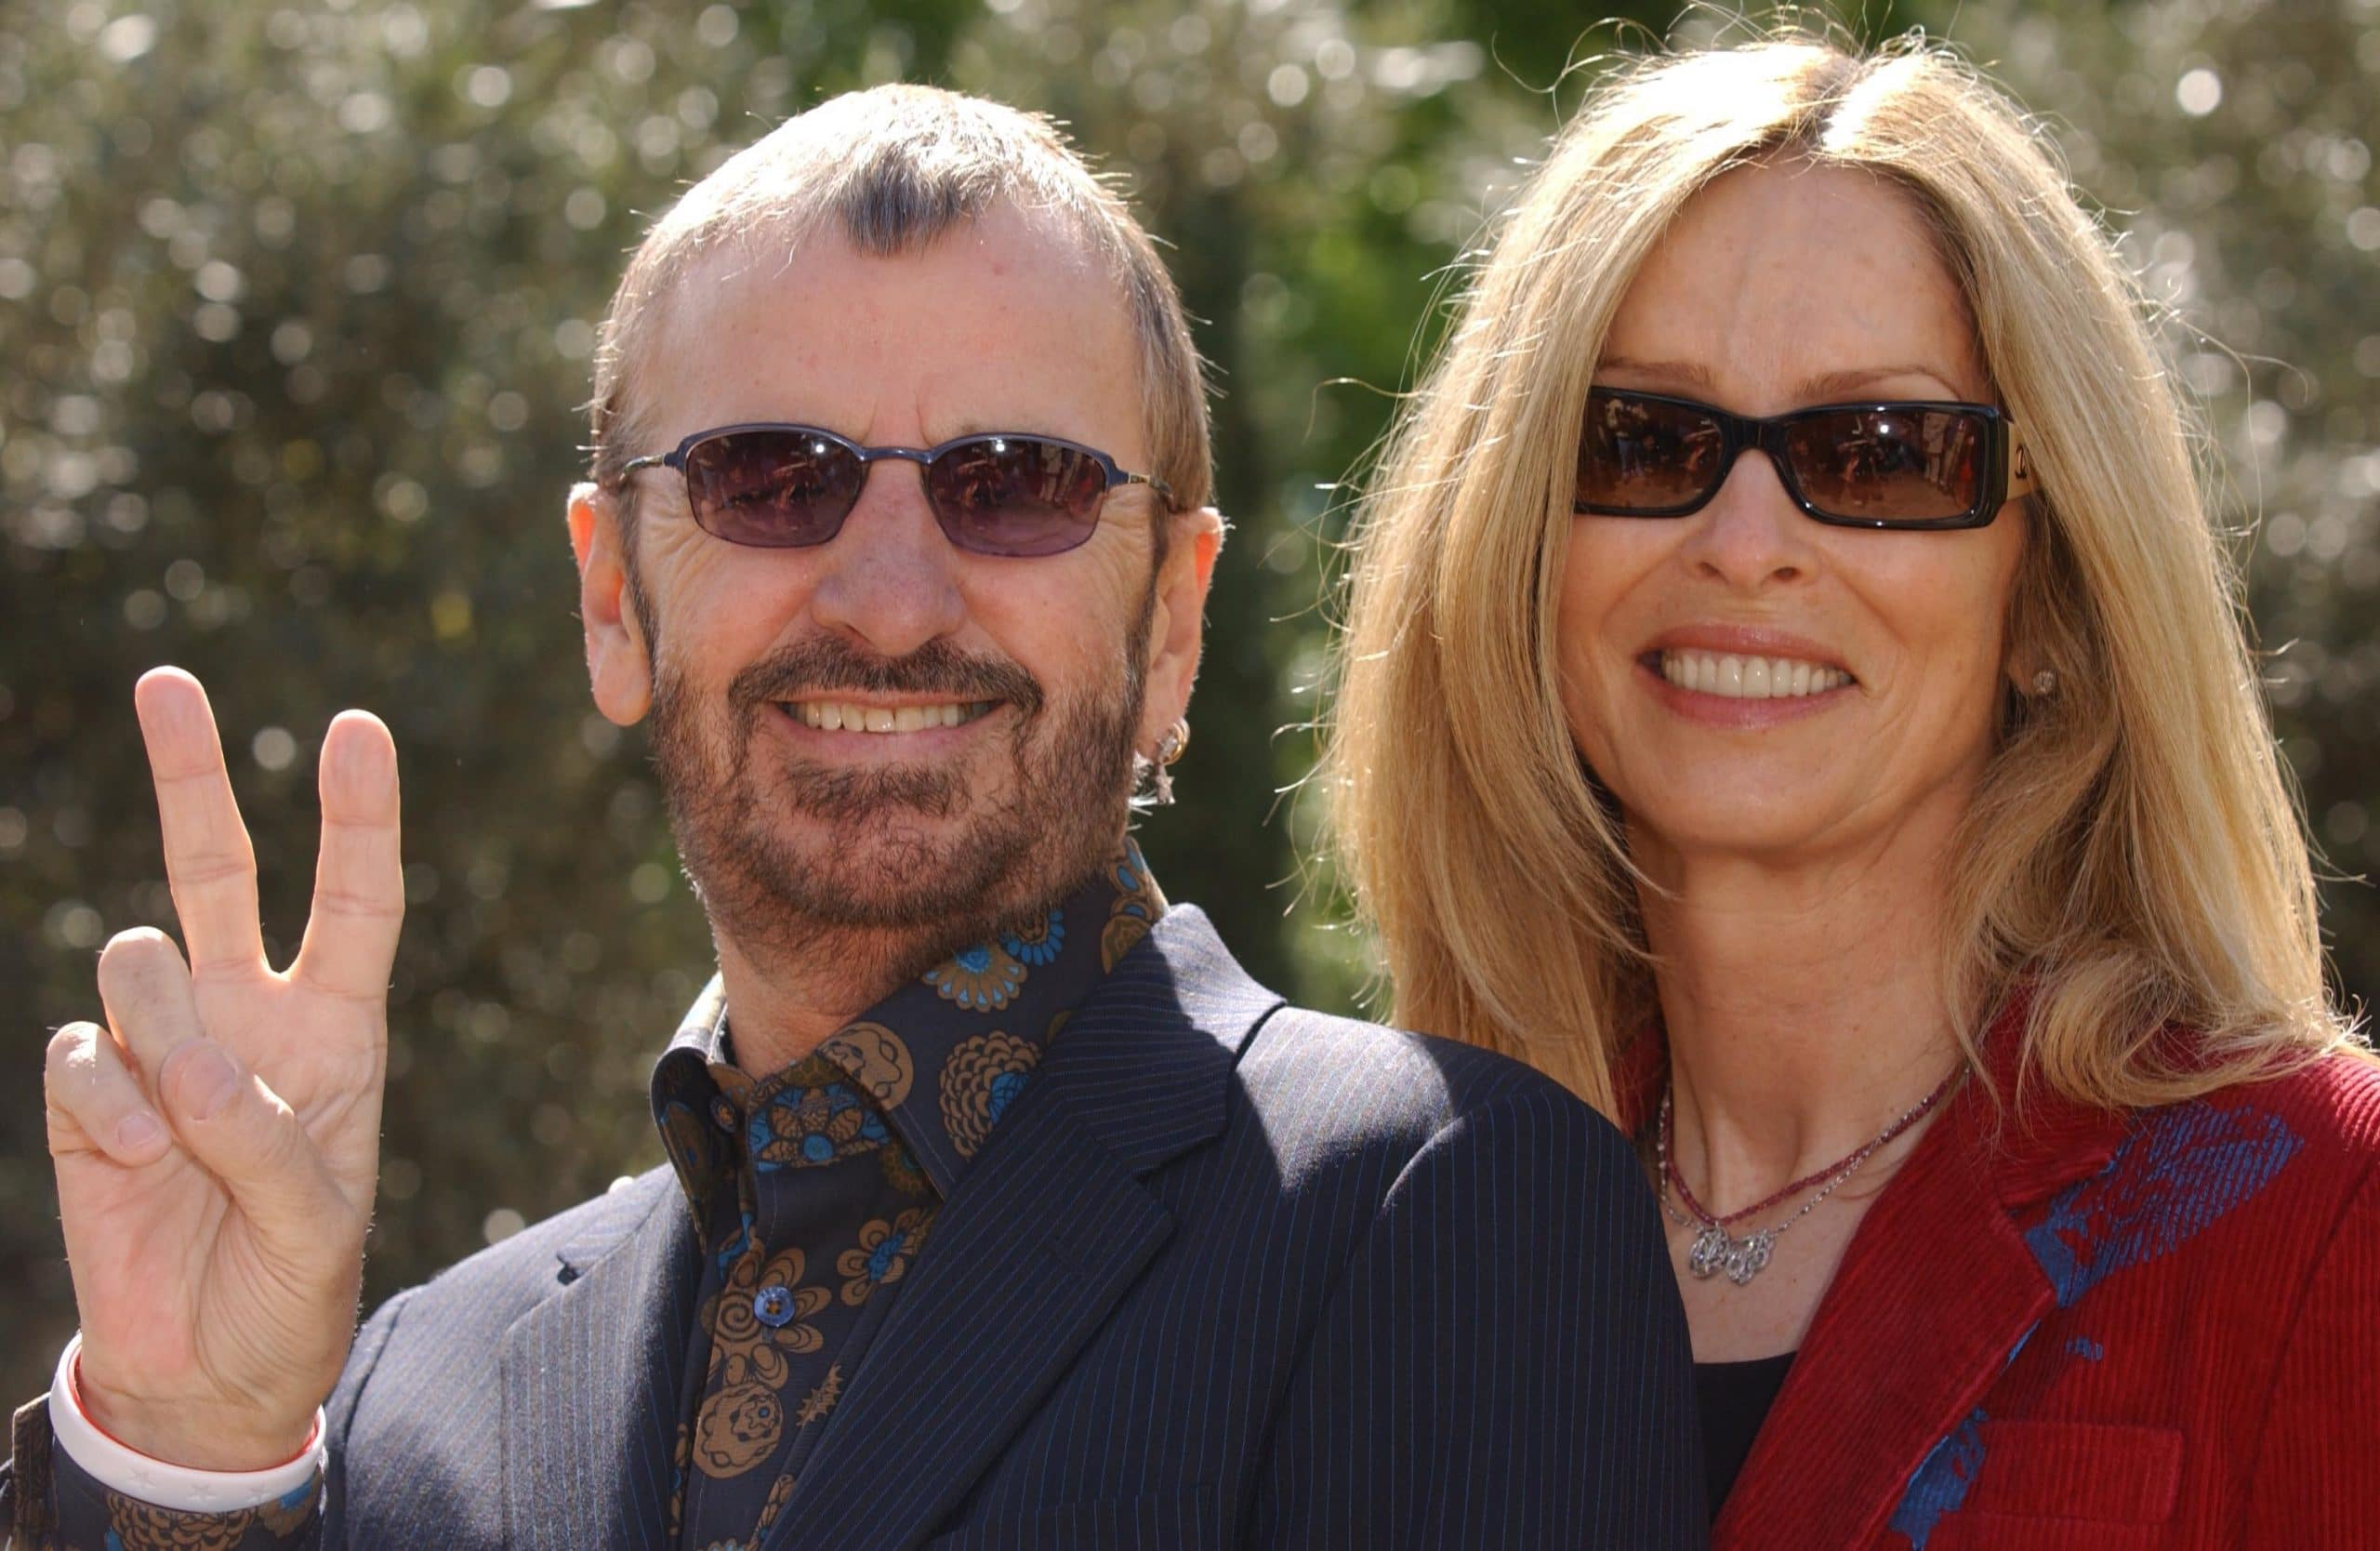 Ringo Starr and Barbara Bach attend the 2005 Chelsea Flower Show in London